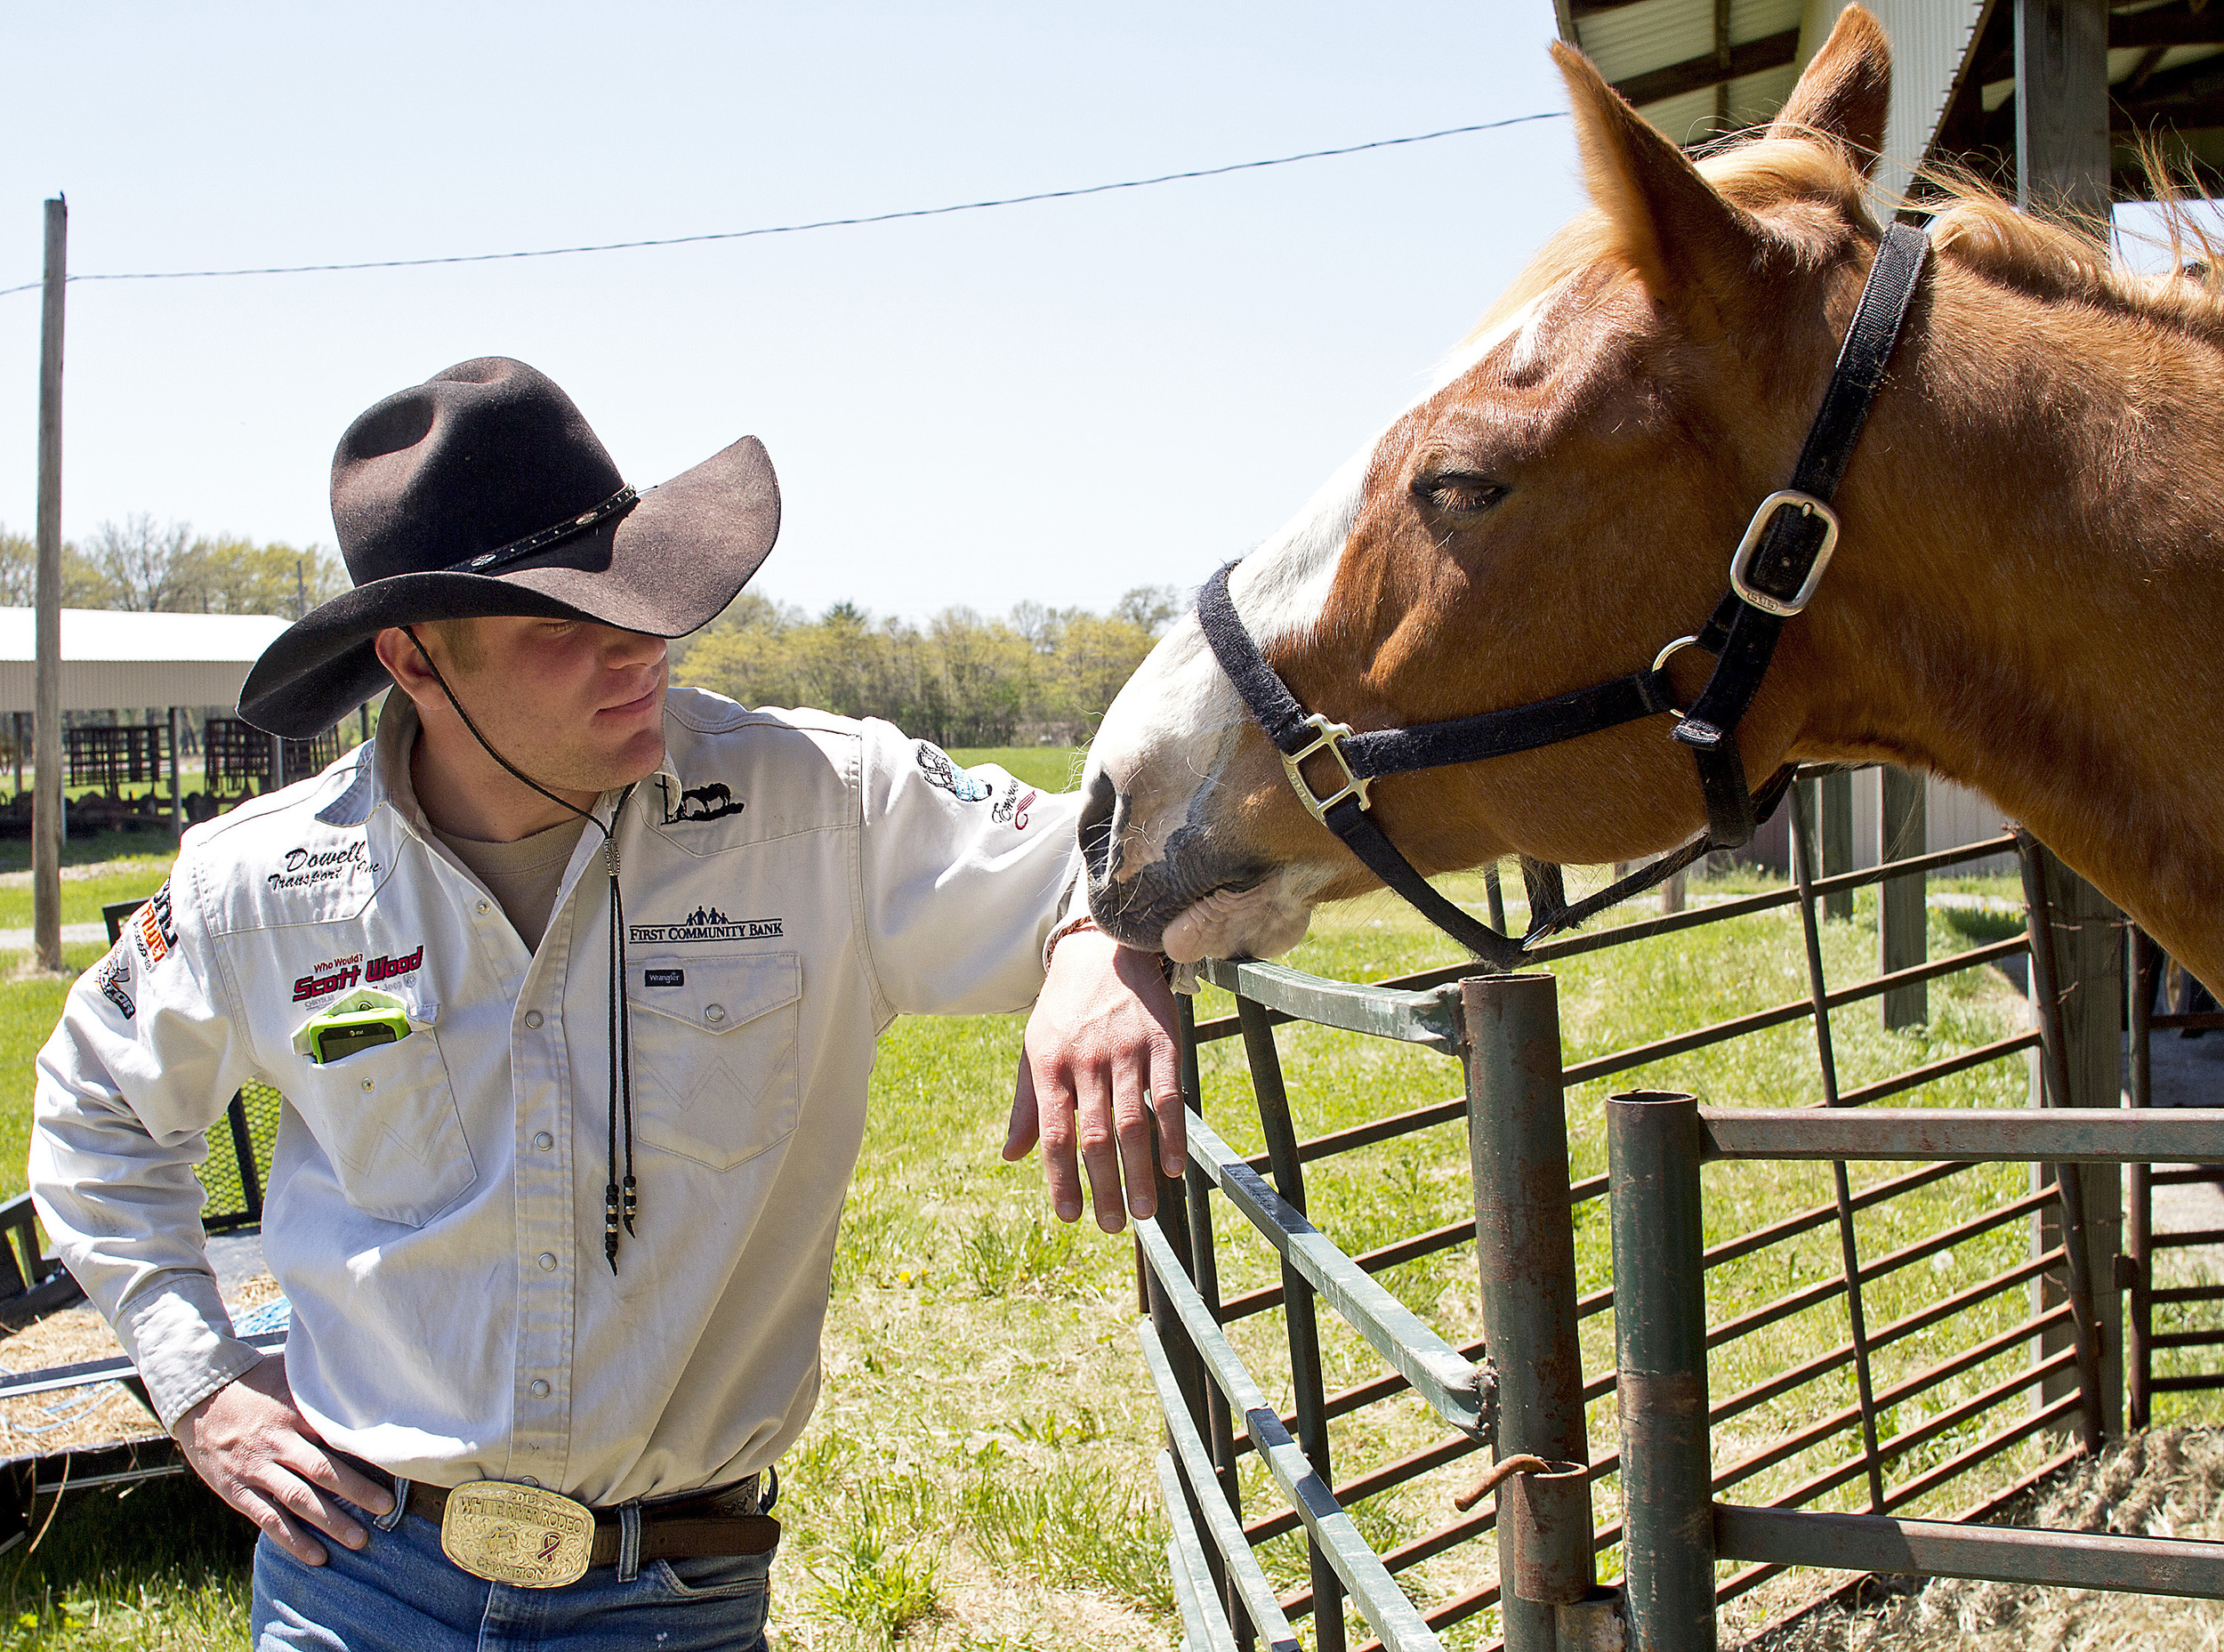 Tye Sturgeon, of Batesville, Ark., spends time with his horse Edward on April25at the Randolph County Fairgrounds in Sparta, Ill. Sturgeon hopes to ride across 48 states with Edward to benefit Western Wishes, a non-profit organization that helps children and young adults who are victims of severe spinal cord and head injuries as well as survivors of cancer.